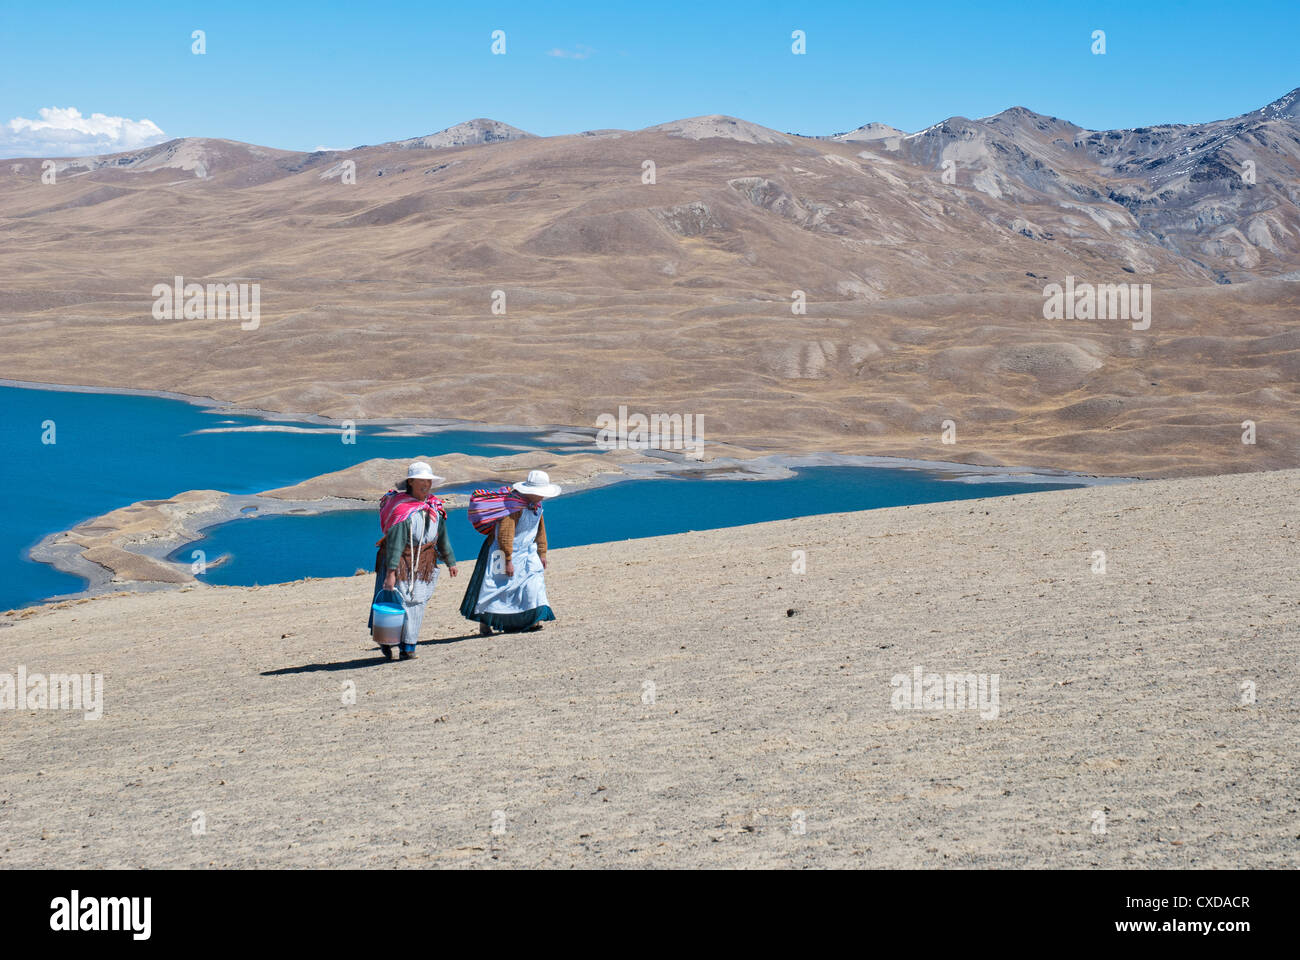 Aymara women in the Cordillera Real with the Lake Tuni in the background - Stock Image